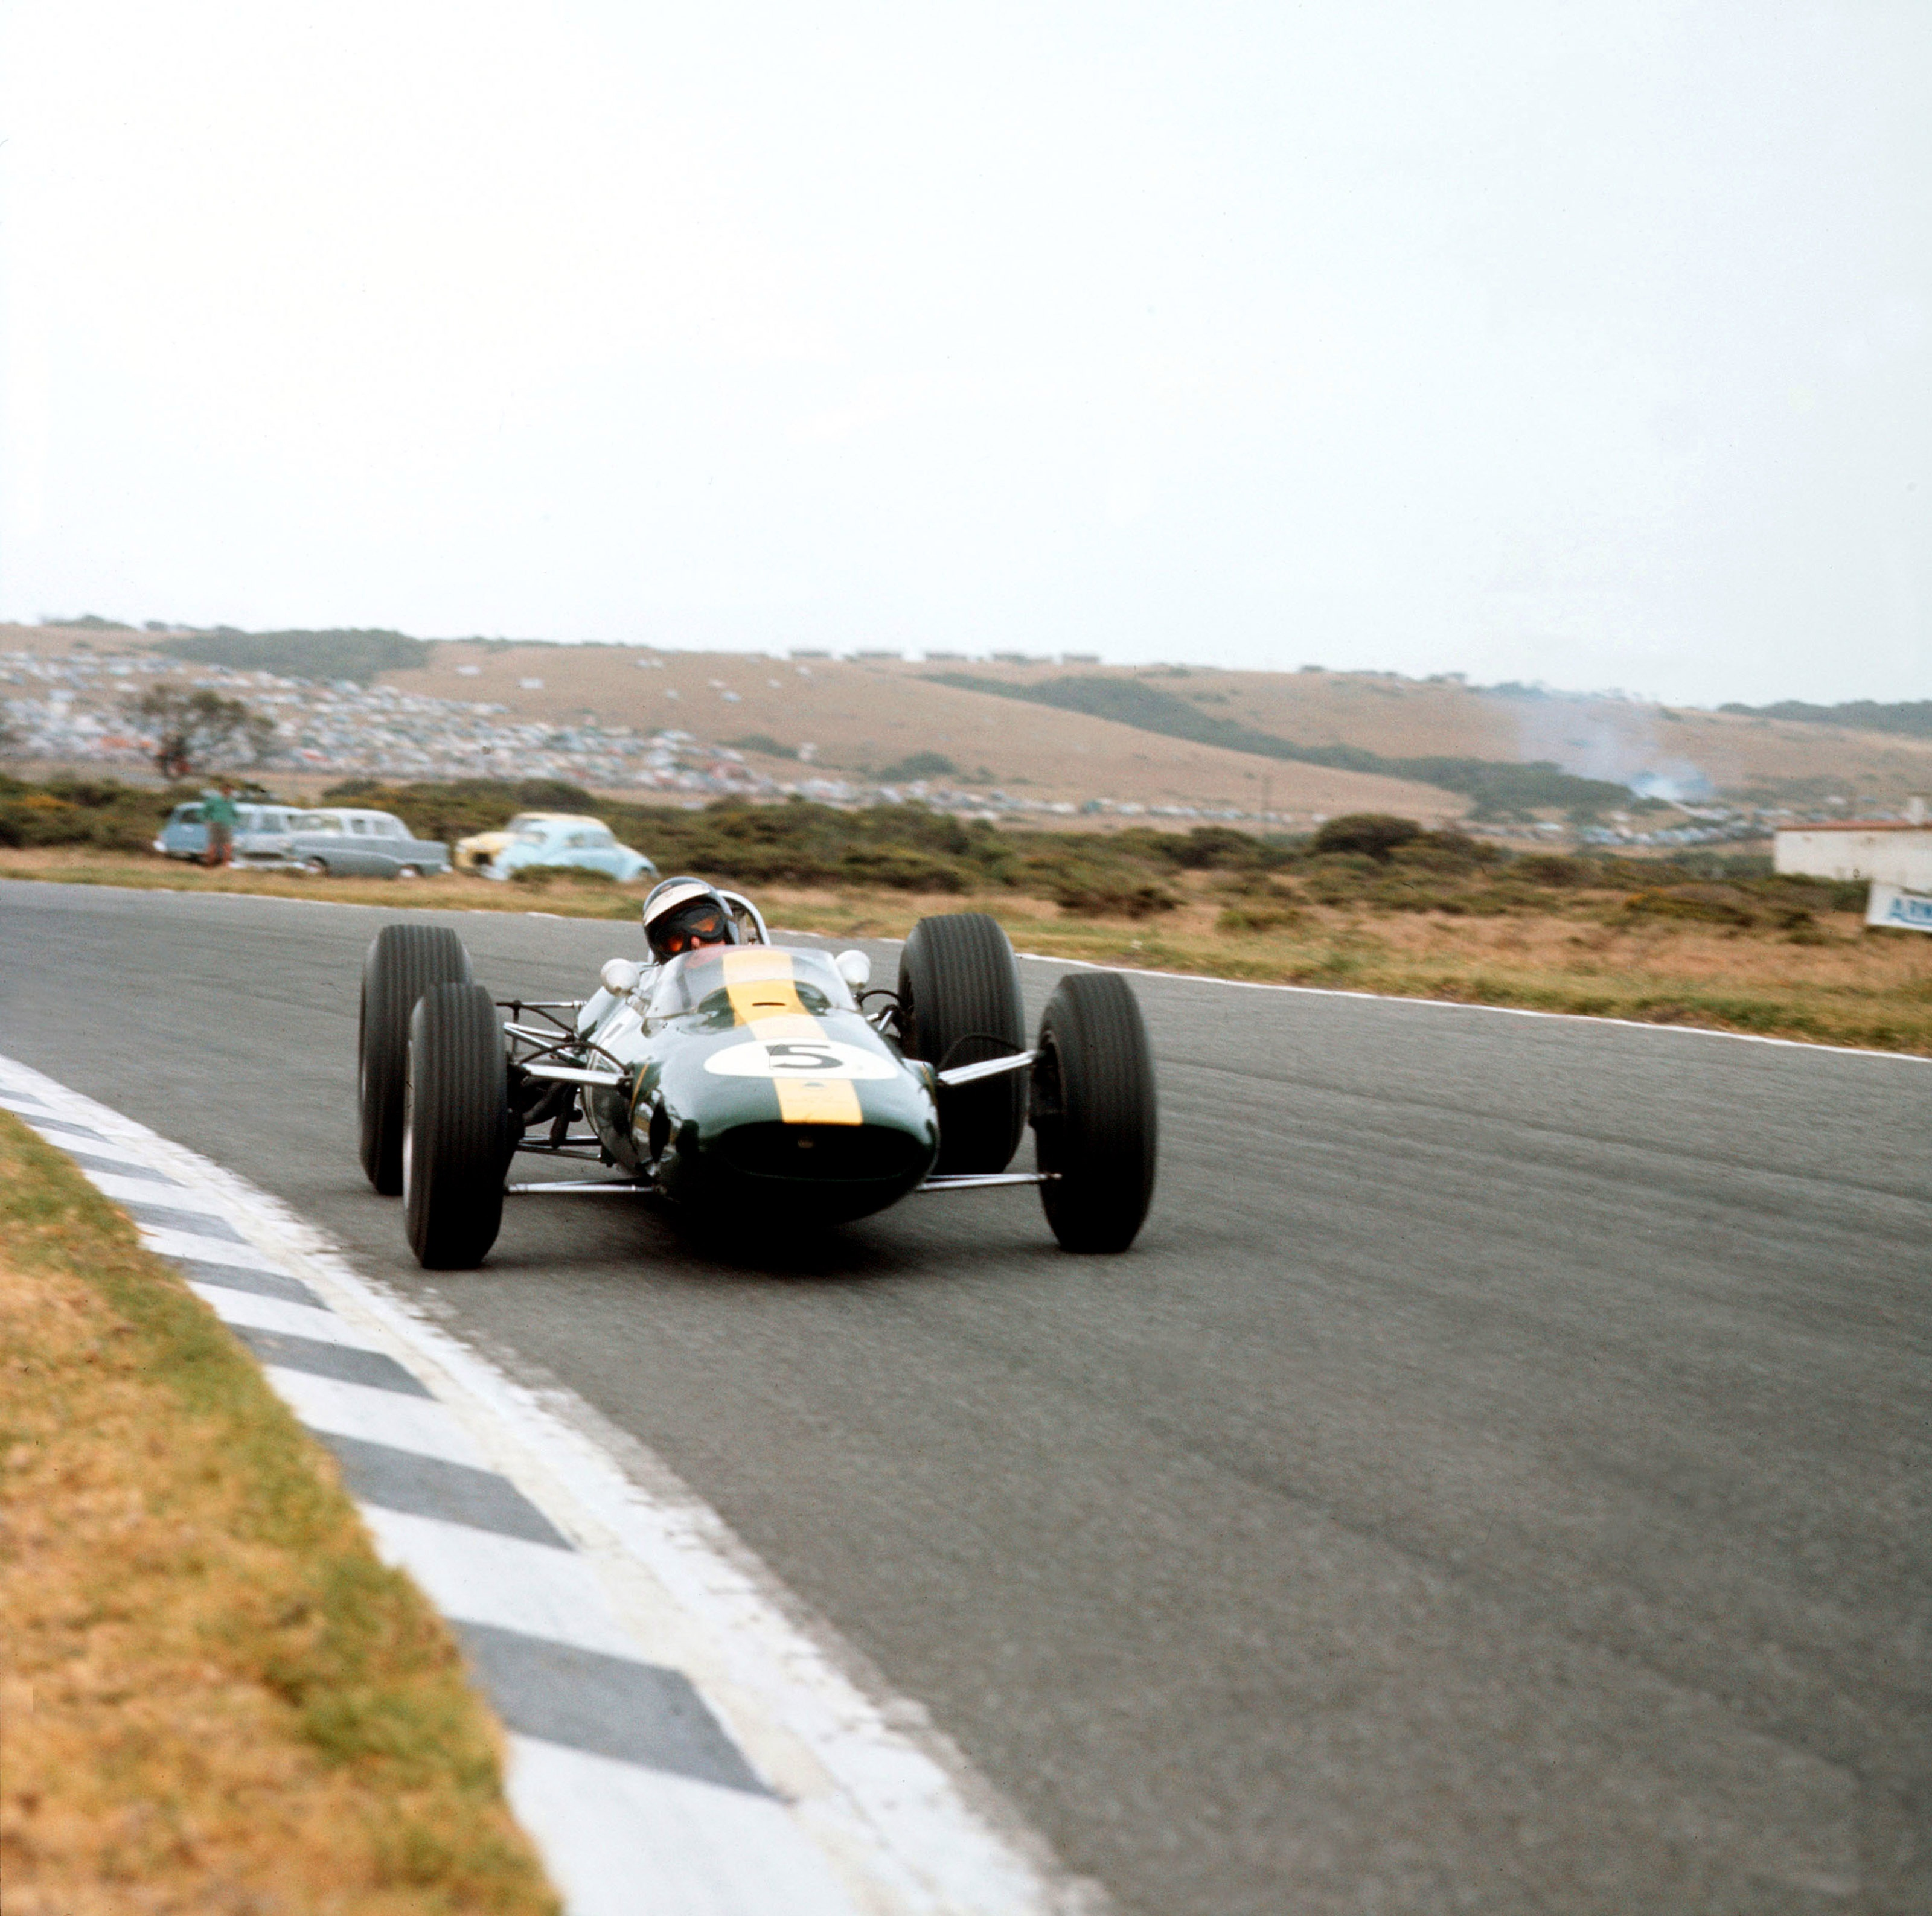 Win No 1 1965 South African Grand Prix.